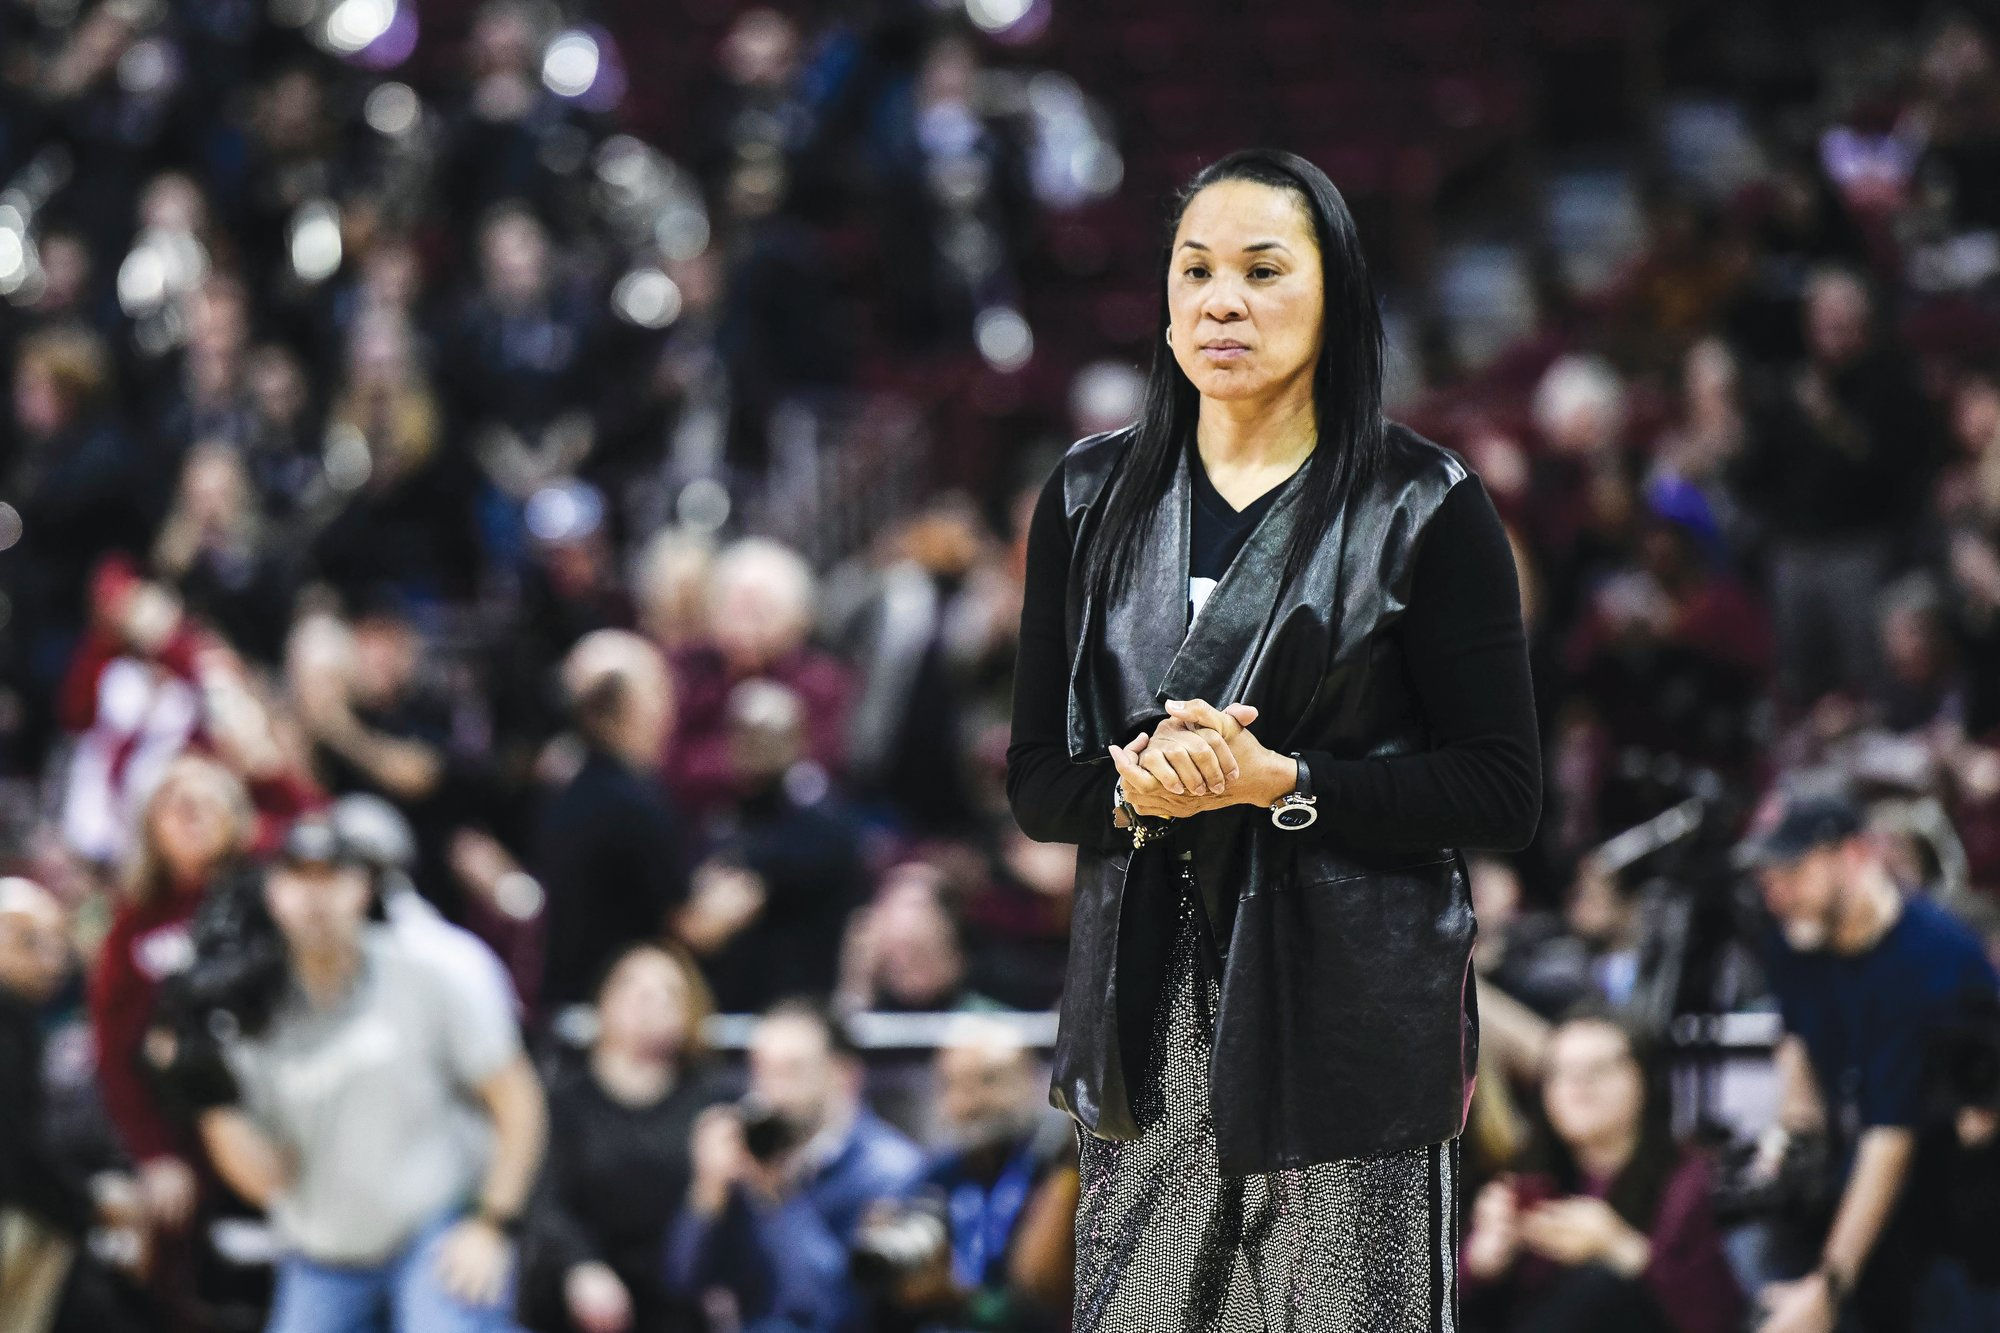 South Carolina head coach Dawn Staley would be prepping to coach Team USA in the Olympics if not for the coronavirus pandemic. Instead, she's focusing on getting the Gamecocks back on campus safely.